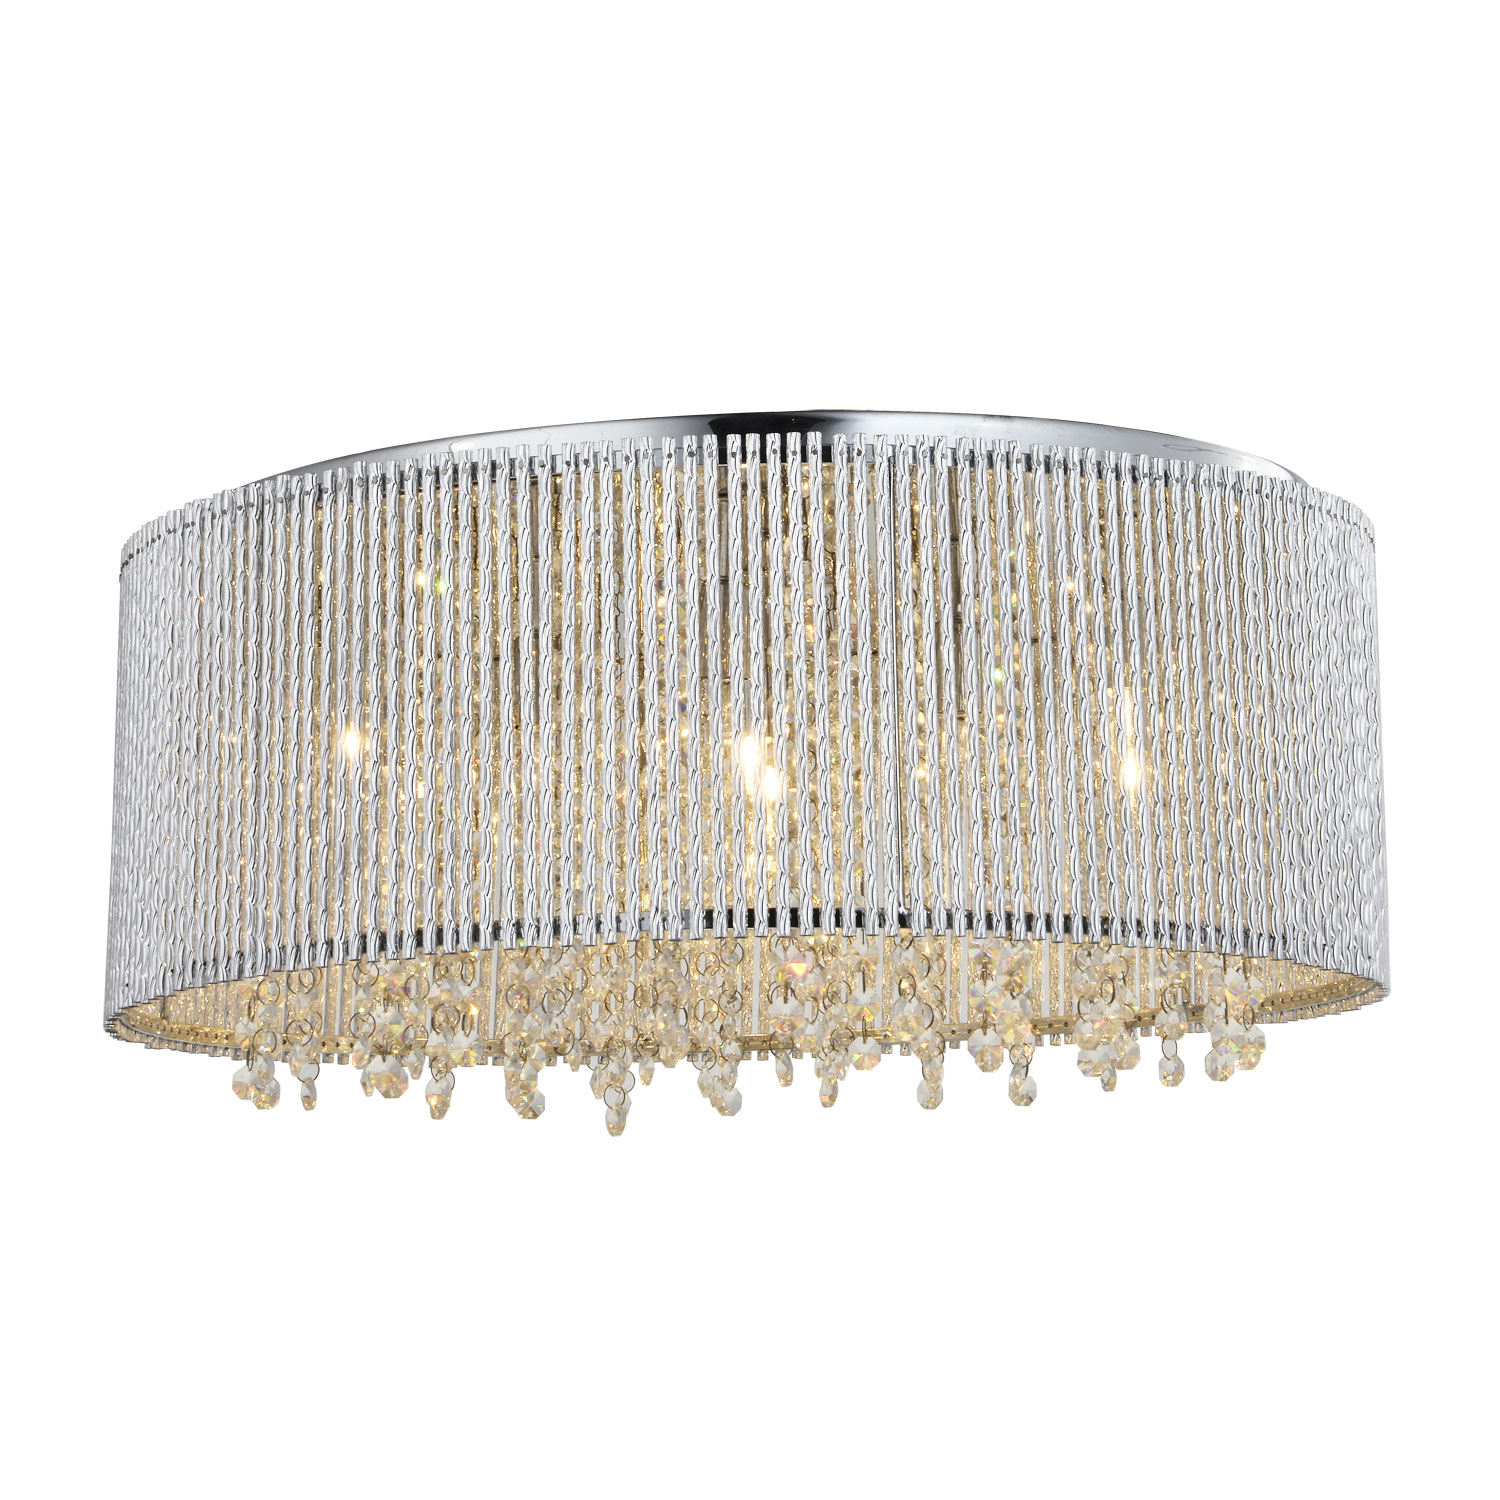 Crystalline round flush mount crystals chandelier bromi design crystalline round flush mount crystals chandelier arubaitofo Choice Image